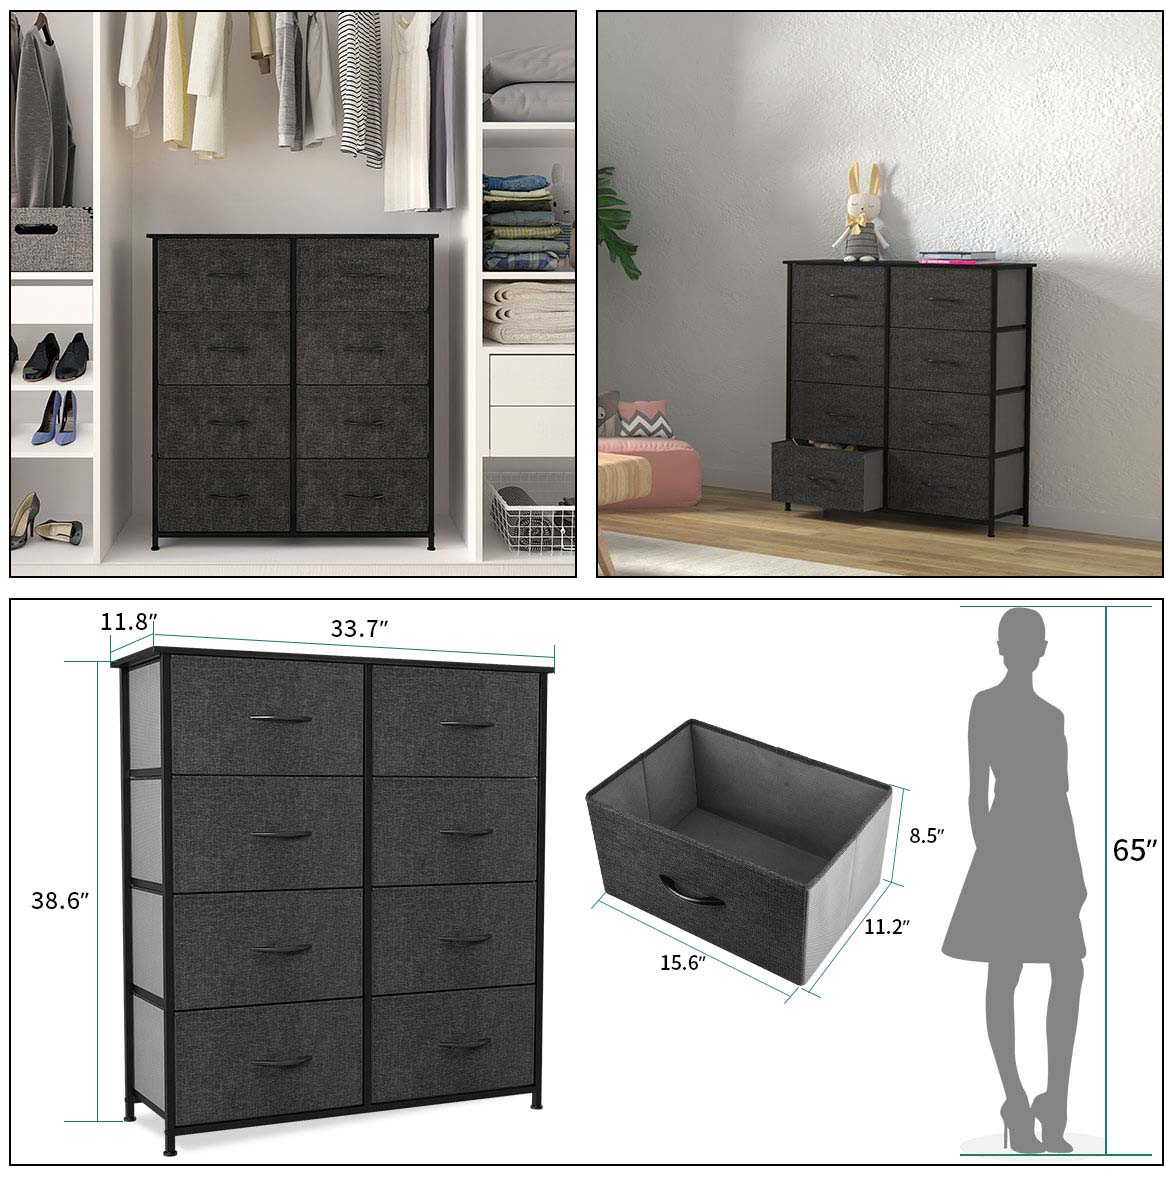 8 drawer chest detail size